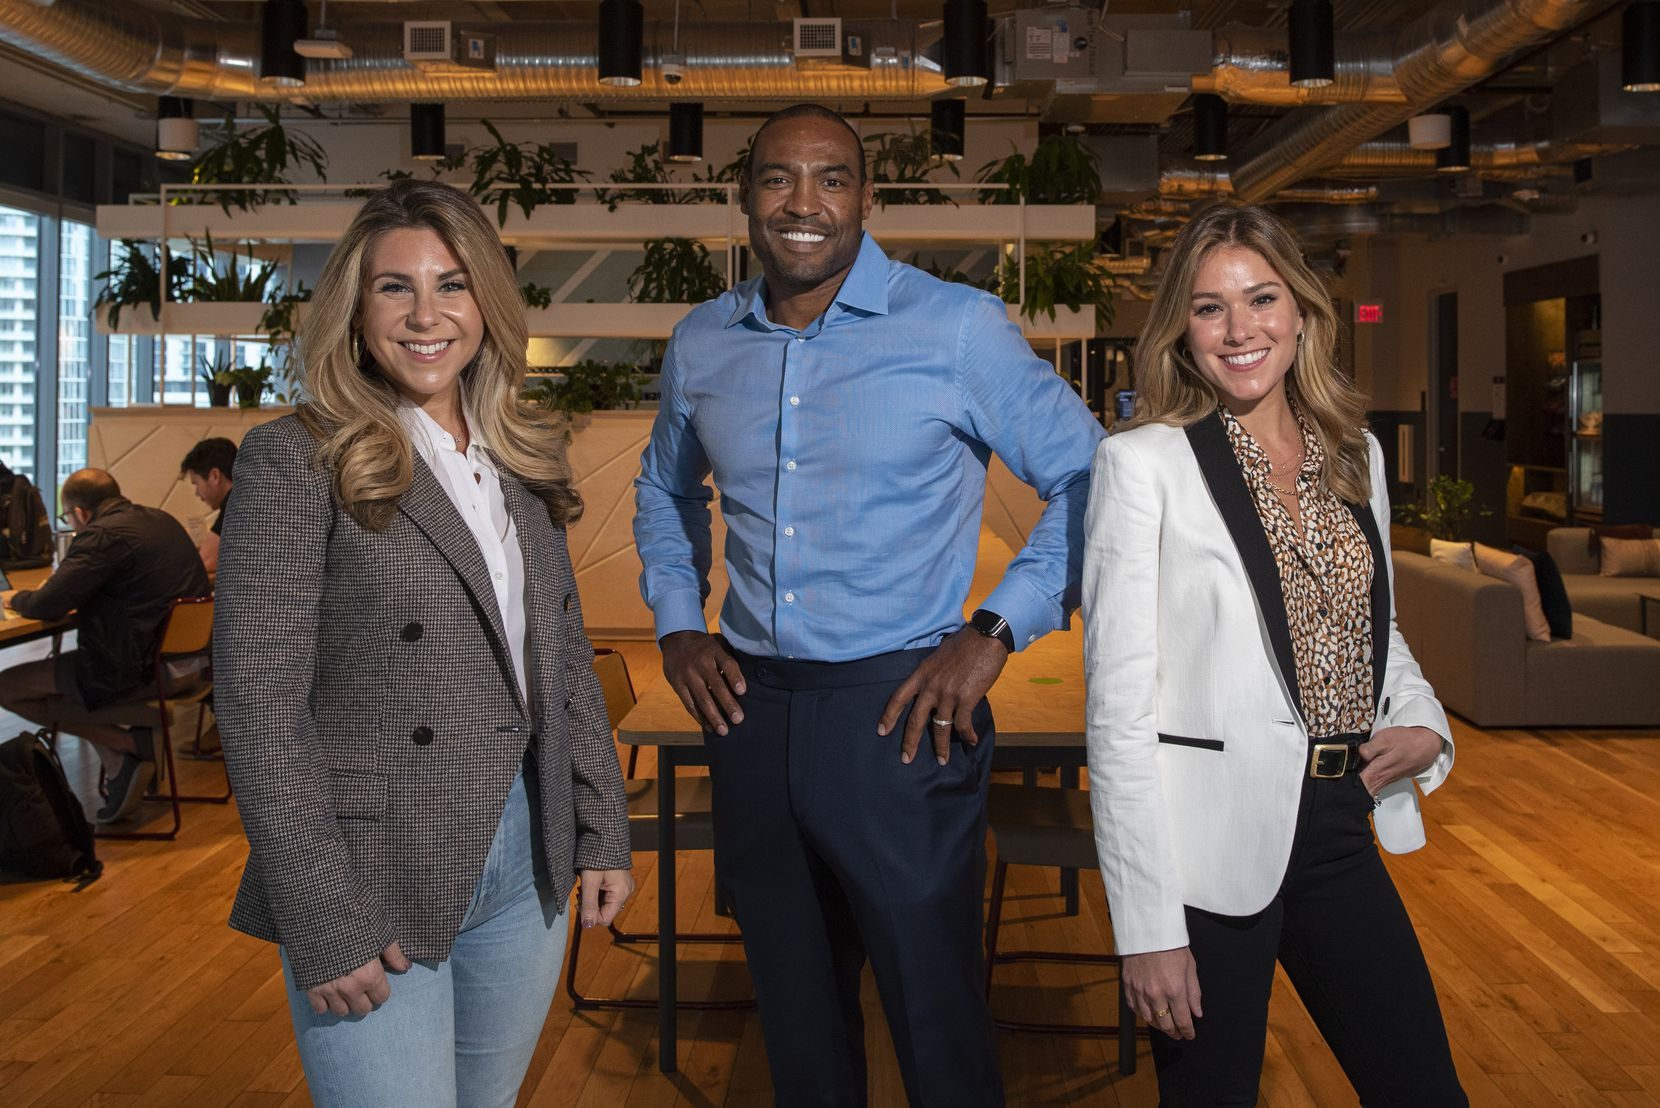 CounterFind founder and chairman Darren Woodson, center, with Rachel Aronson, left, vice president for business development, and Jamie Gerson, right, head of strategic partnerships, inside their virtual office space at WeWork in downtown Dallas.